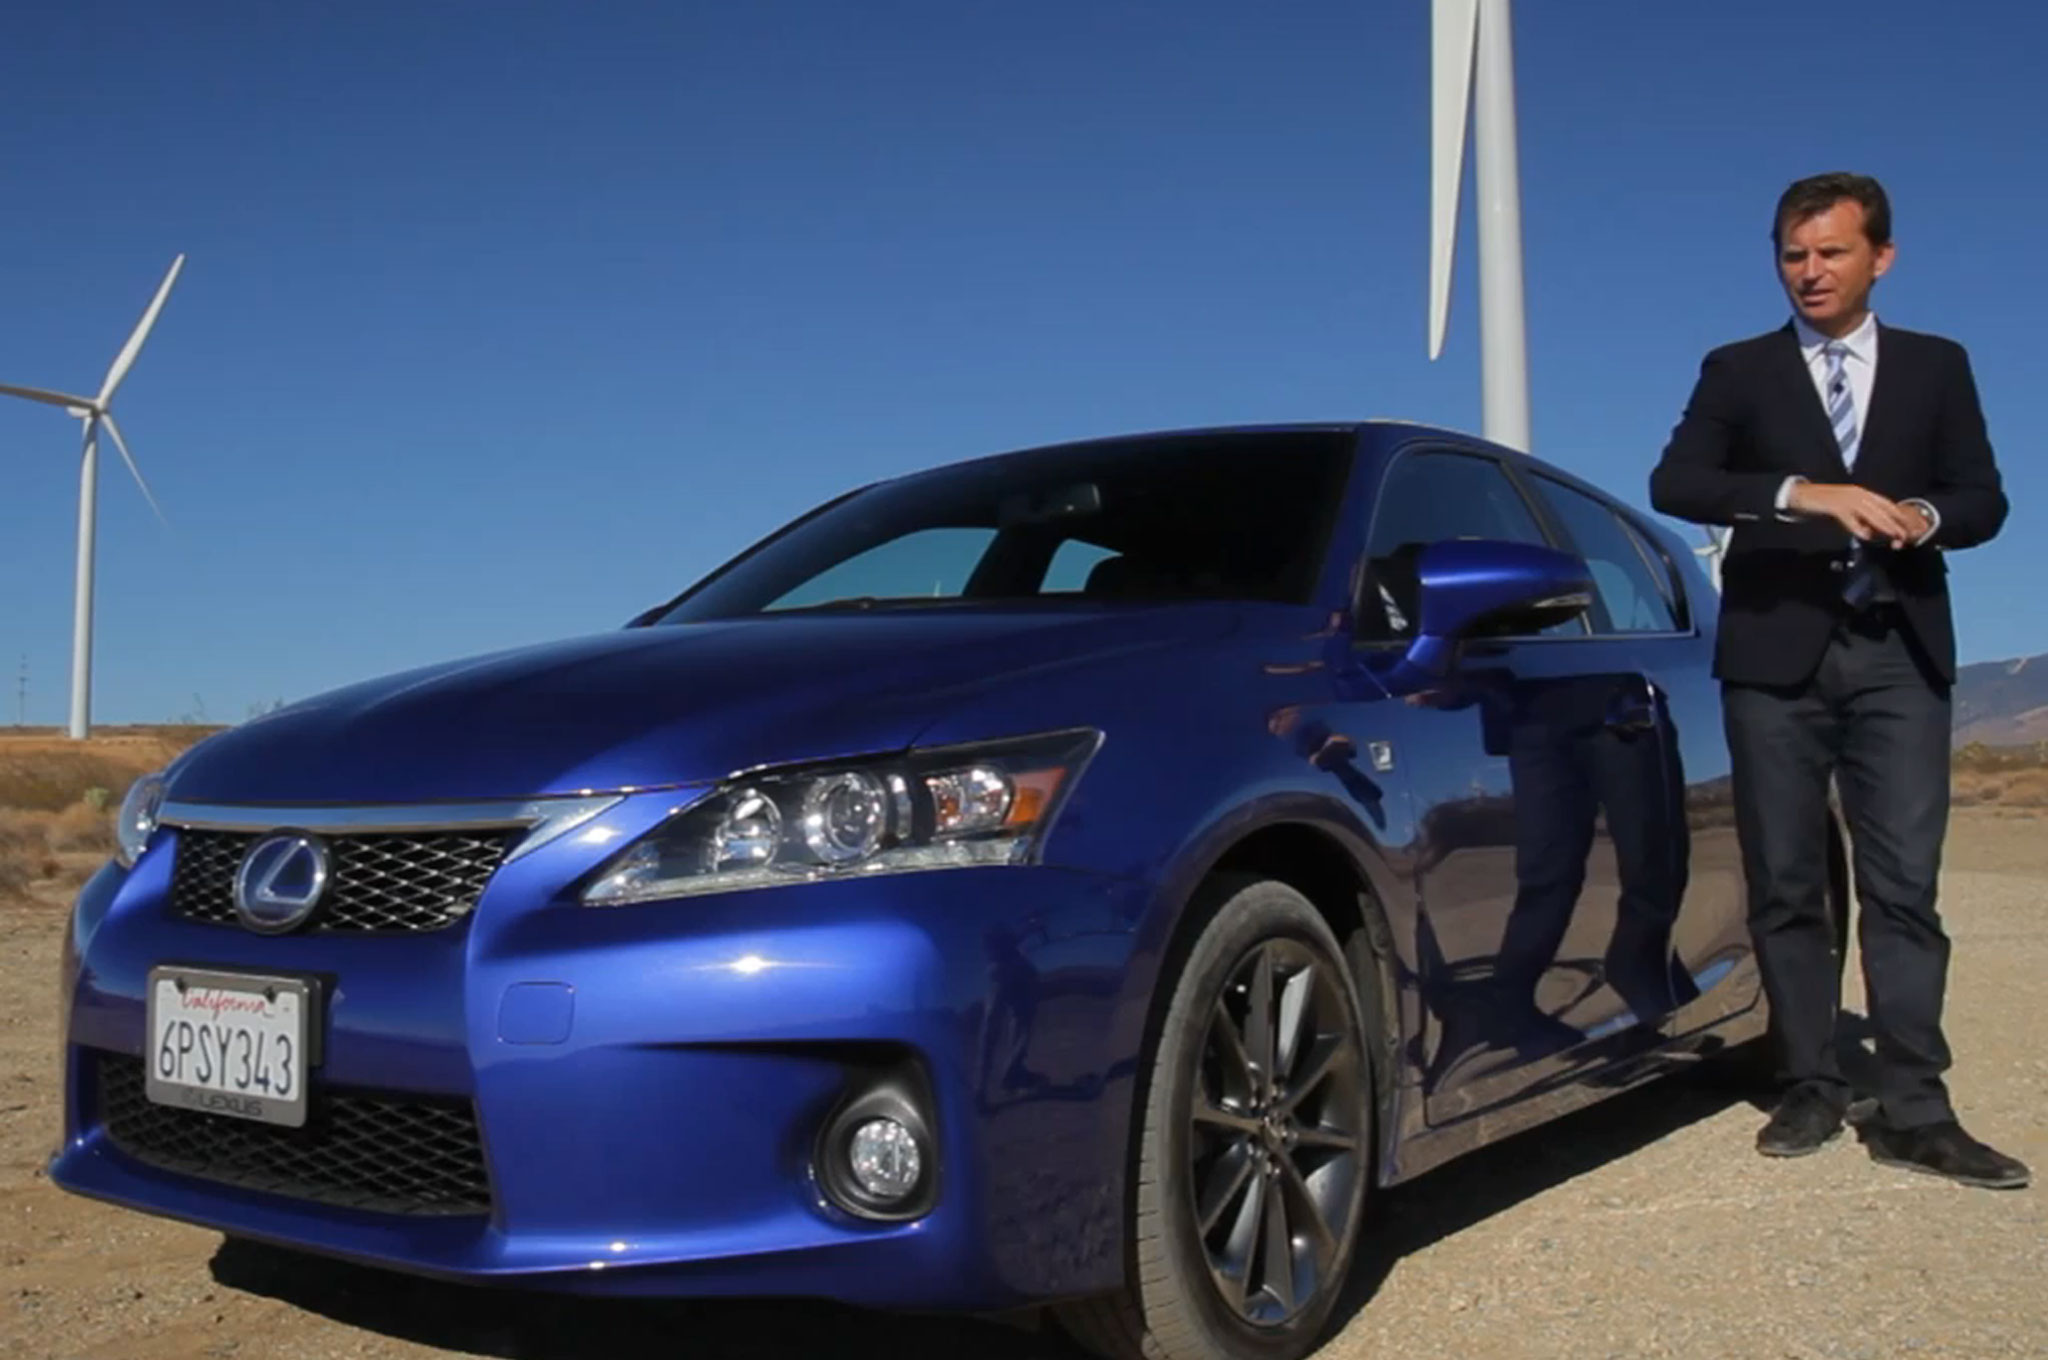 2013 Lexus CT F Sport With Justin Bell Screen Grab1